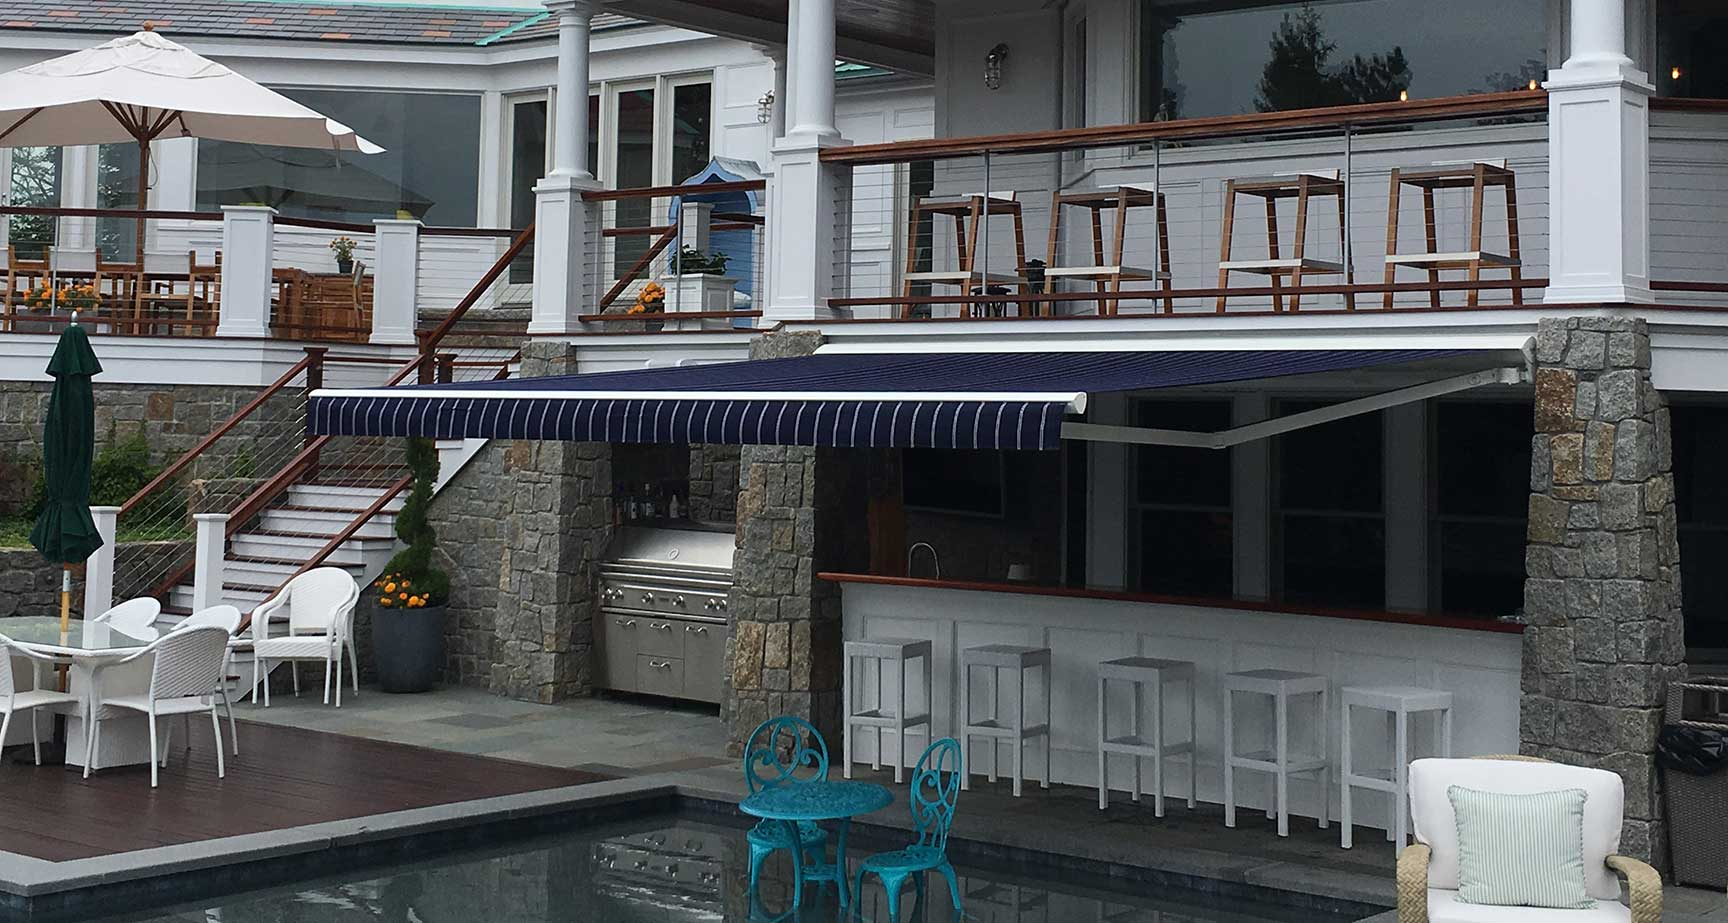 Mr Awnings installs retractable awnings in Massachusetts and New Hampshire